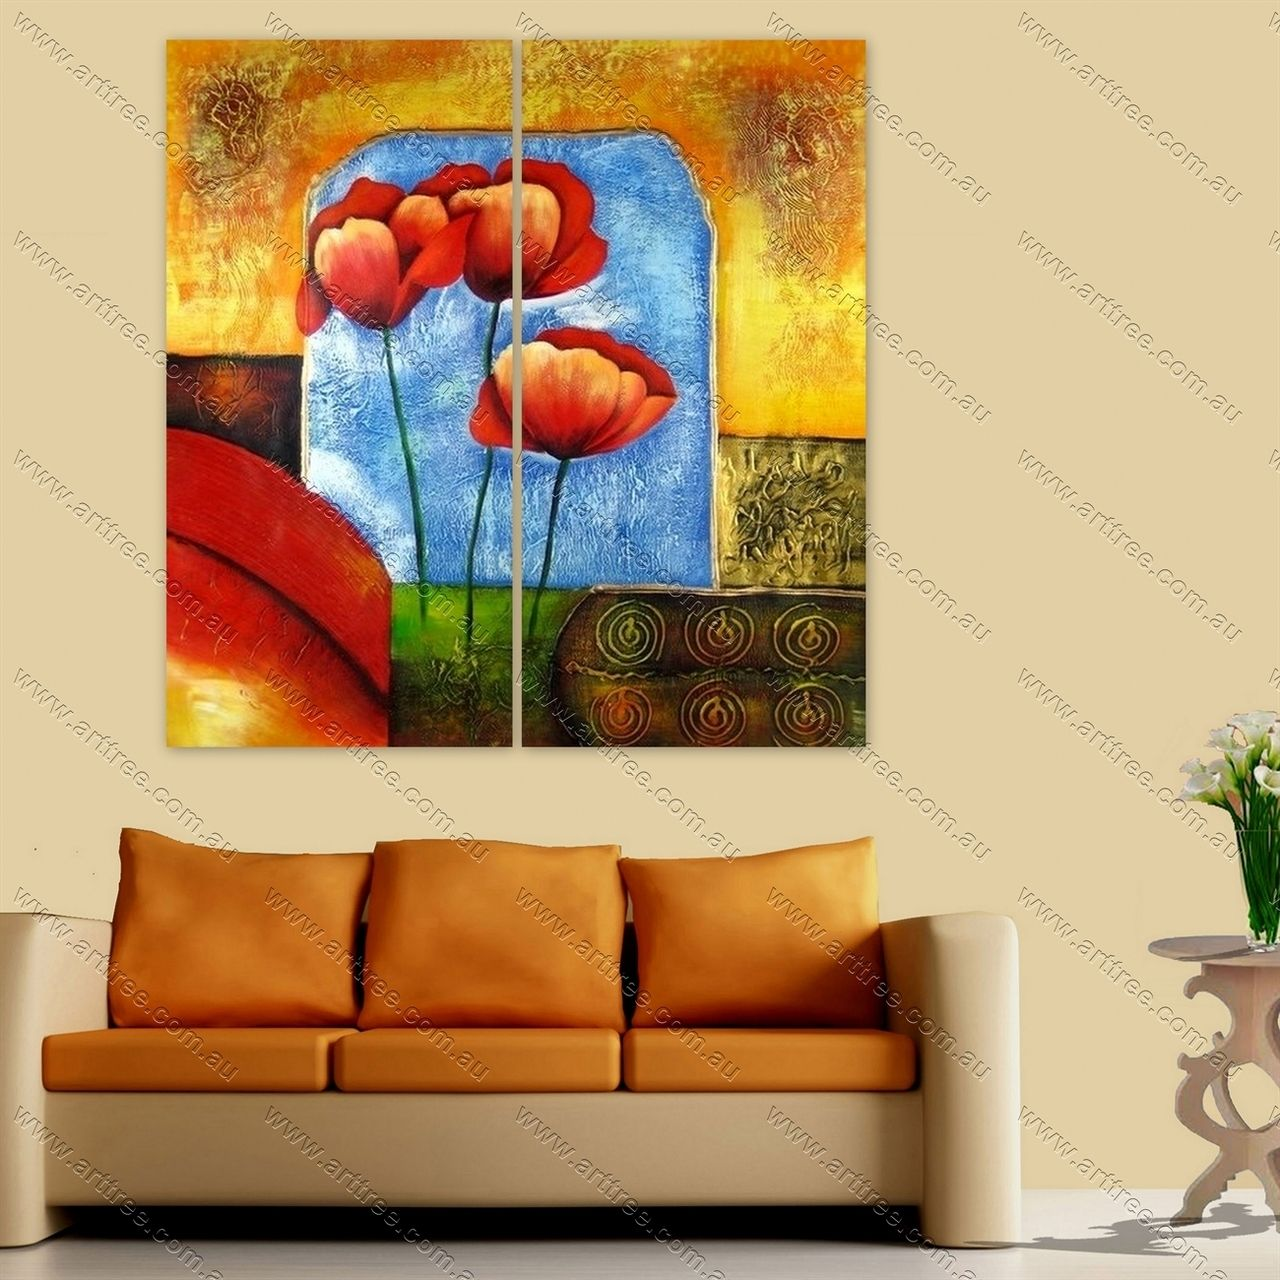 Rose Floral Oil Painting | 2 Panel Canvas Painting | Pinterest ...